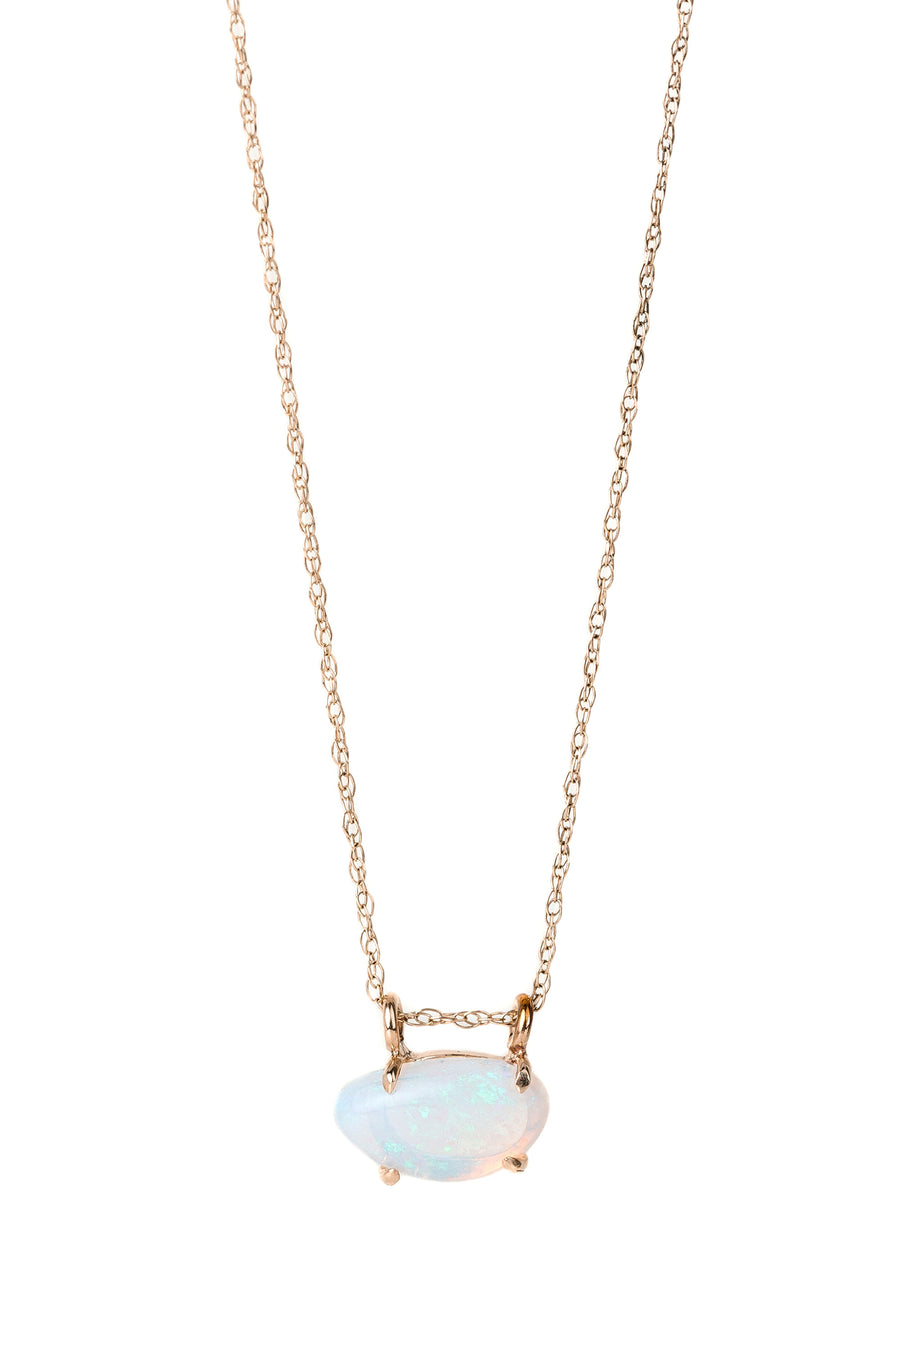 Claw Prong Opal 14k Gold Necklace